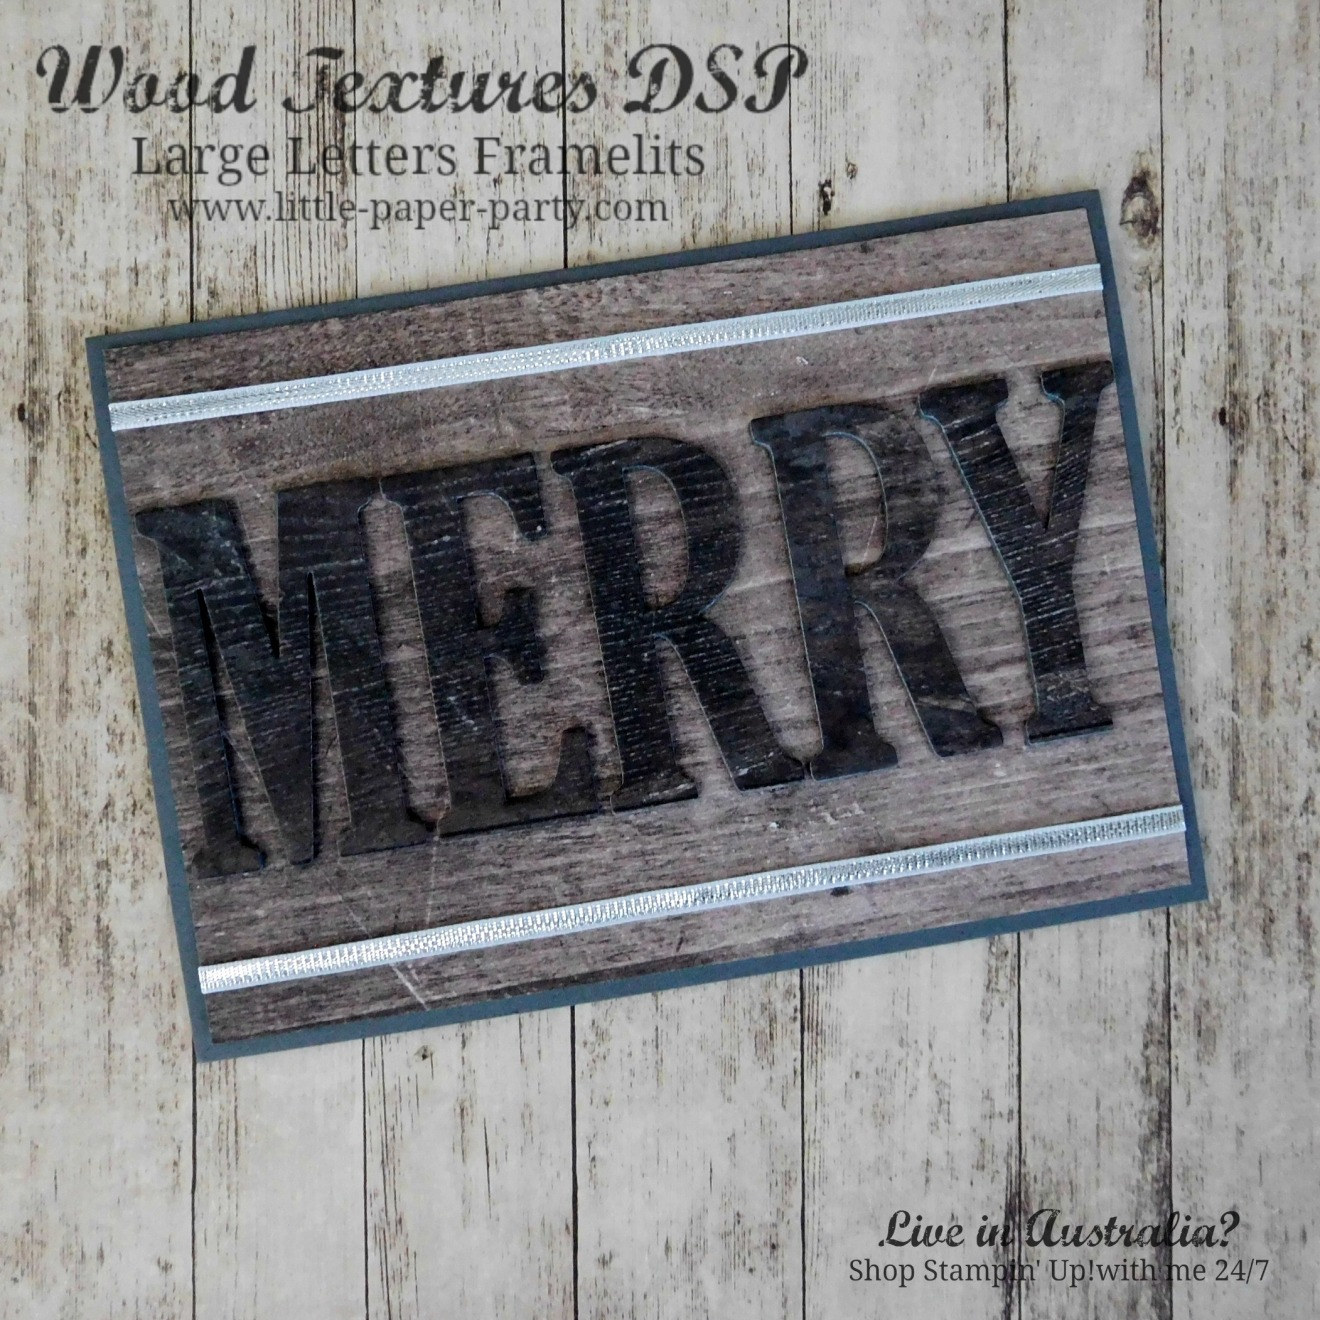 Little Paper Party, Large Letter Framelits, Wood Textures DSP, #1.jpg